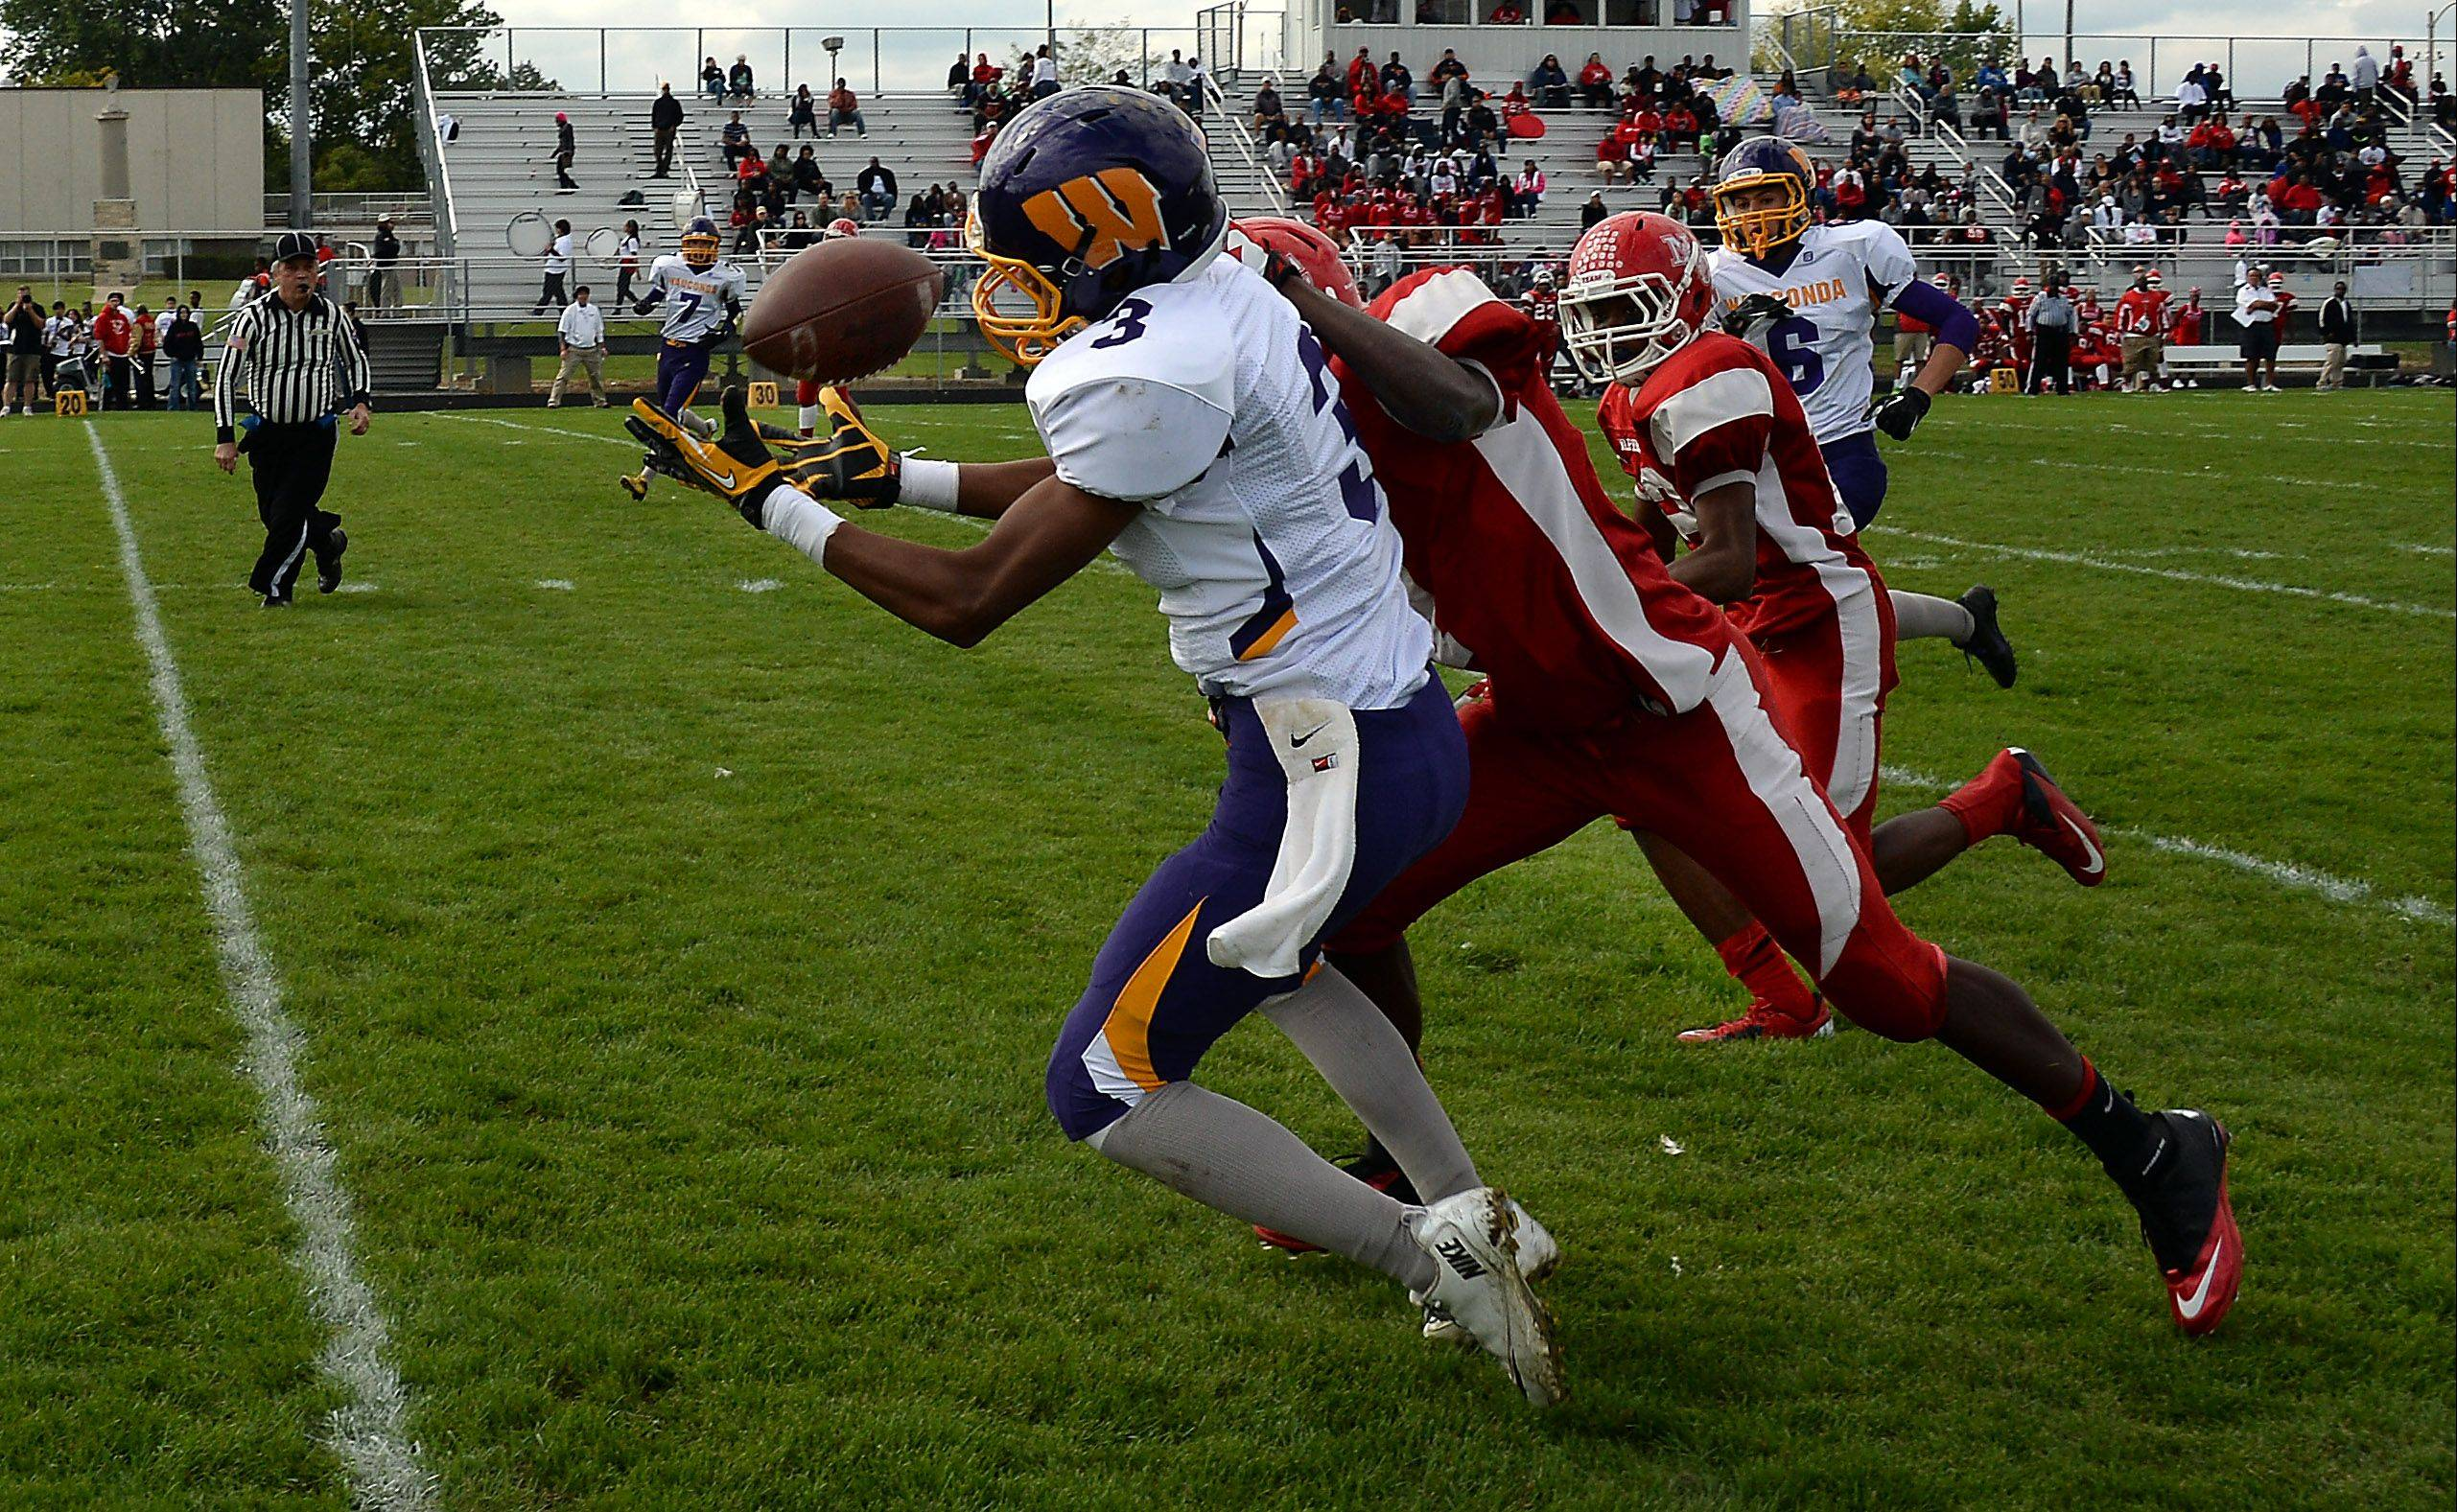 Wauconda�s Josh Anderson hauls in a pass play despite pressure from North Chicago�s Brandon Coofer in the second quarter for major yardage at North Chicago on Saturday.